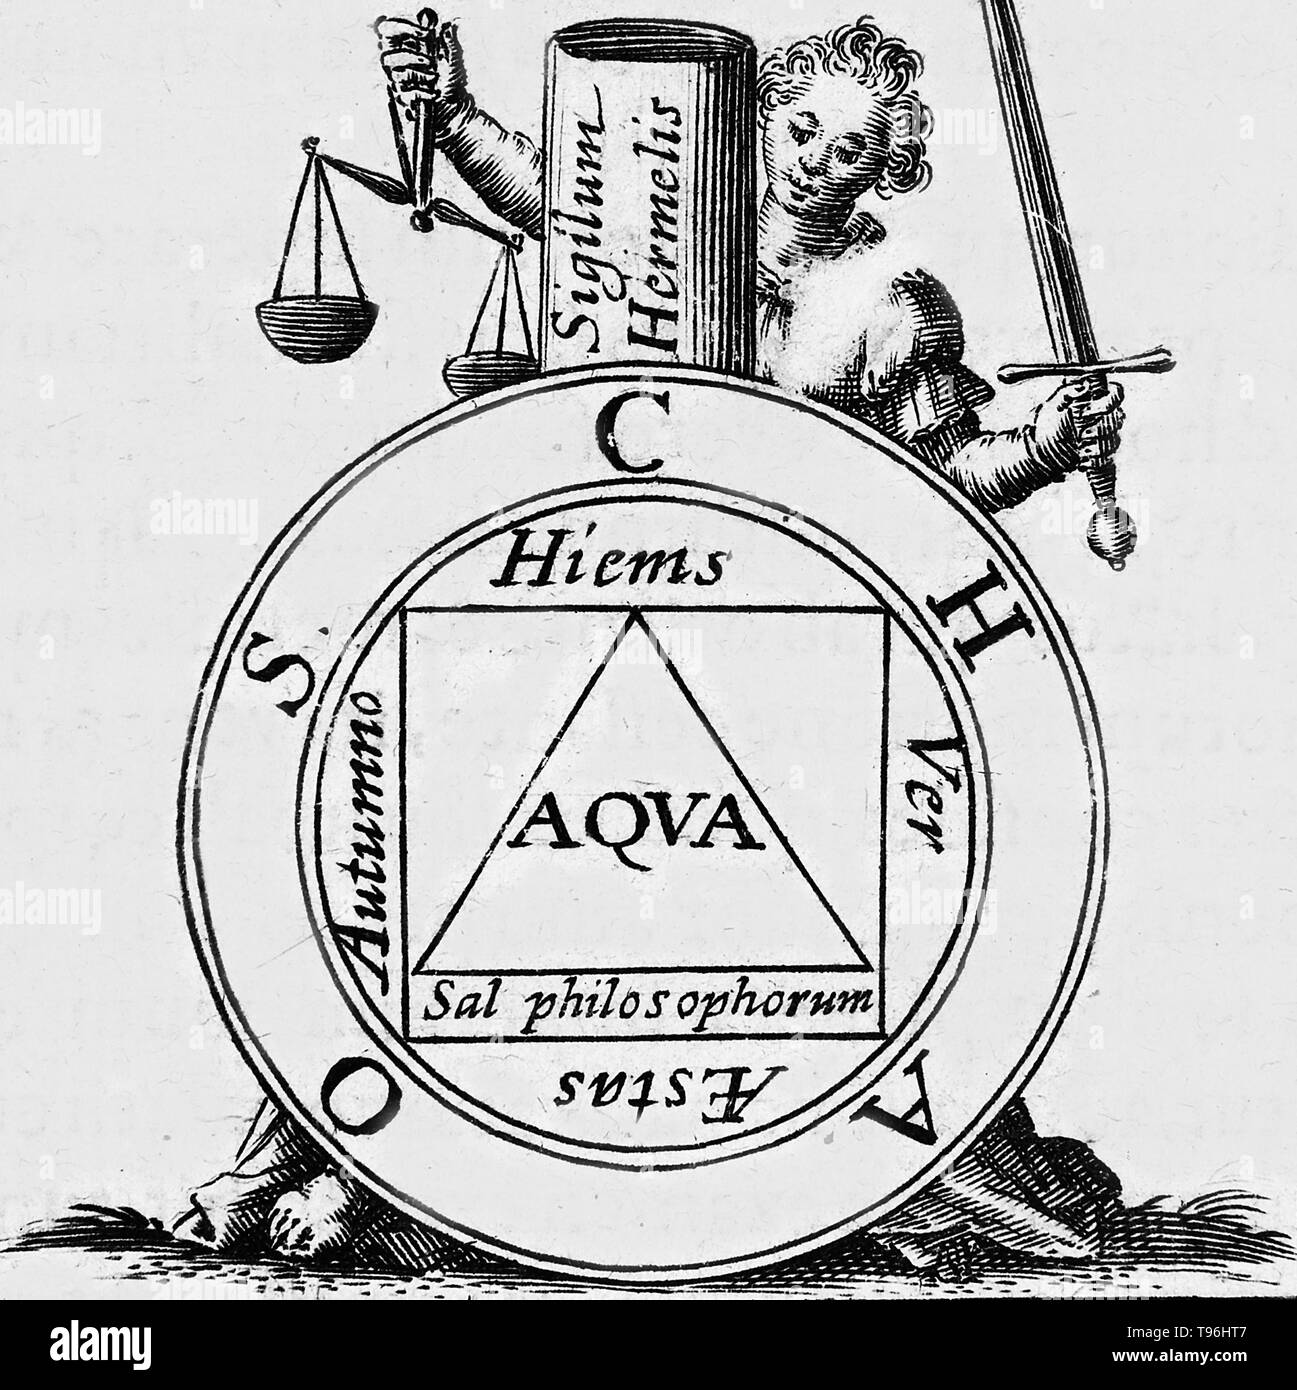 The Seventh Key of Basil Valentine from the 'Twelve Keys of Basil Valentine,' an influential alchemical work first published in 1599 by Johann Thölde. It discusses general alchemical principles. Each chapter, or 'key,' is an allegorical description of one step in the process of creating the philosopher's stone, a legendary alchemical substance capable of turning base metals into gold. - Stock Image